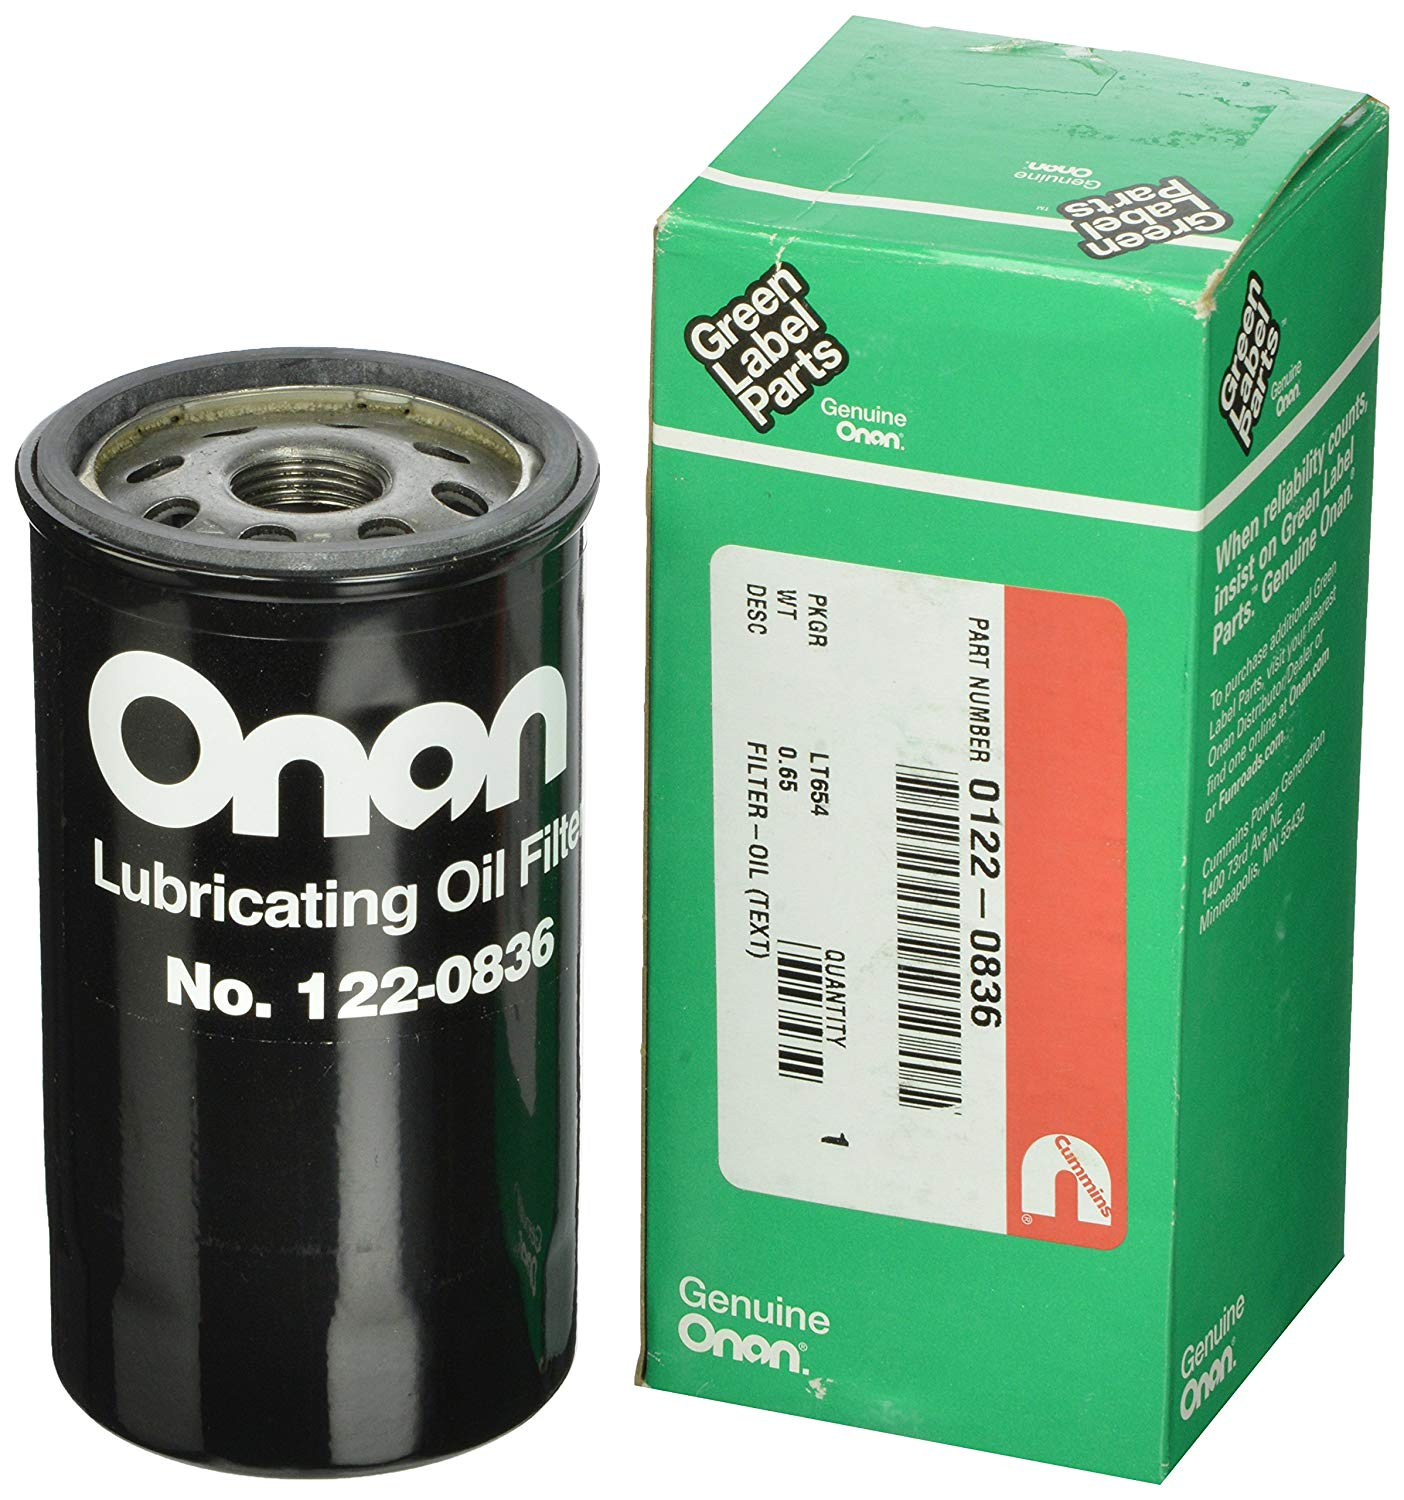 Cummins Onan 122-0836 Oil Filter